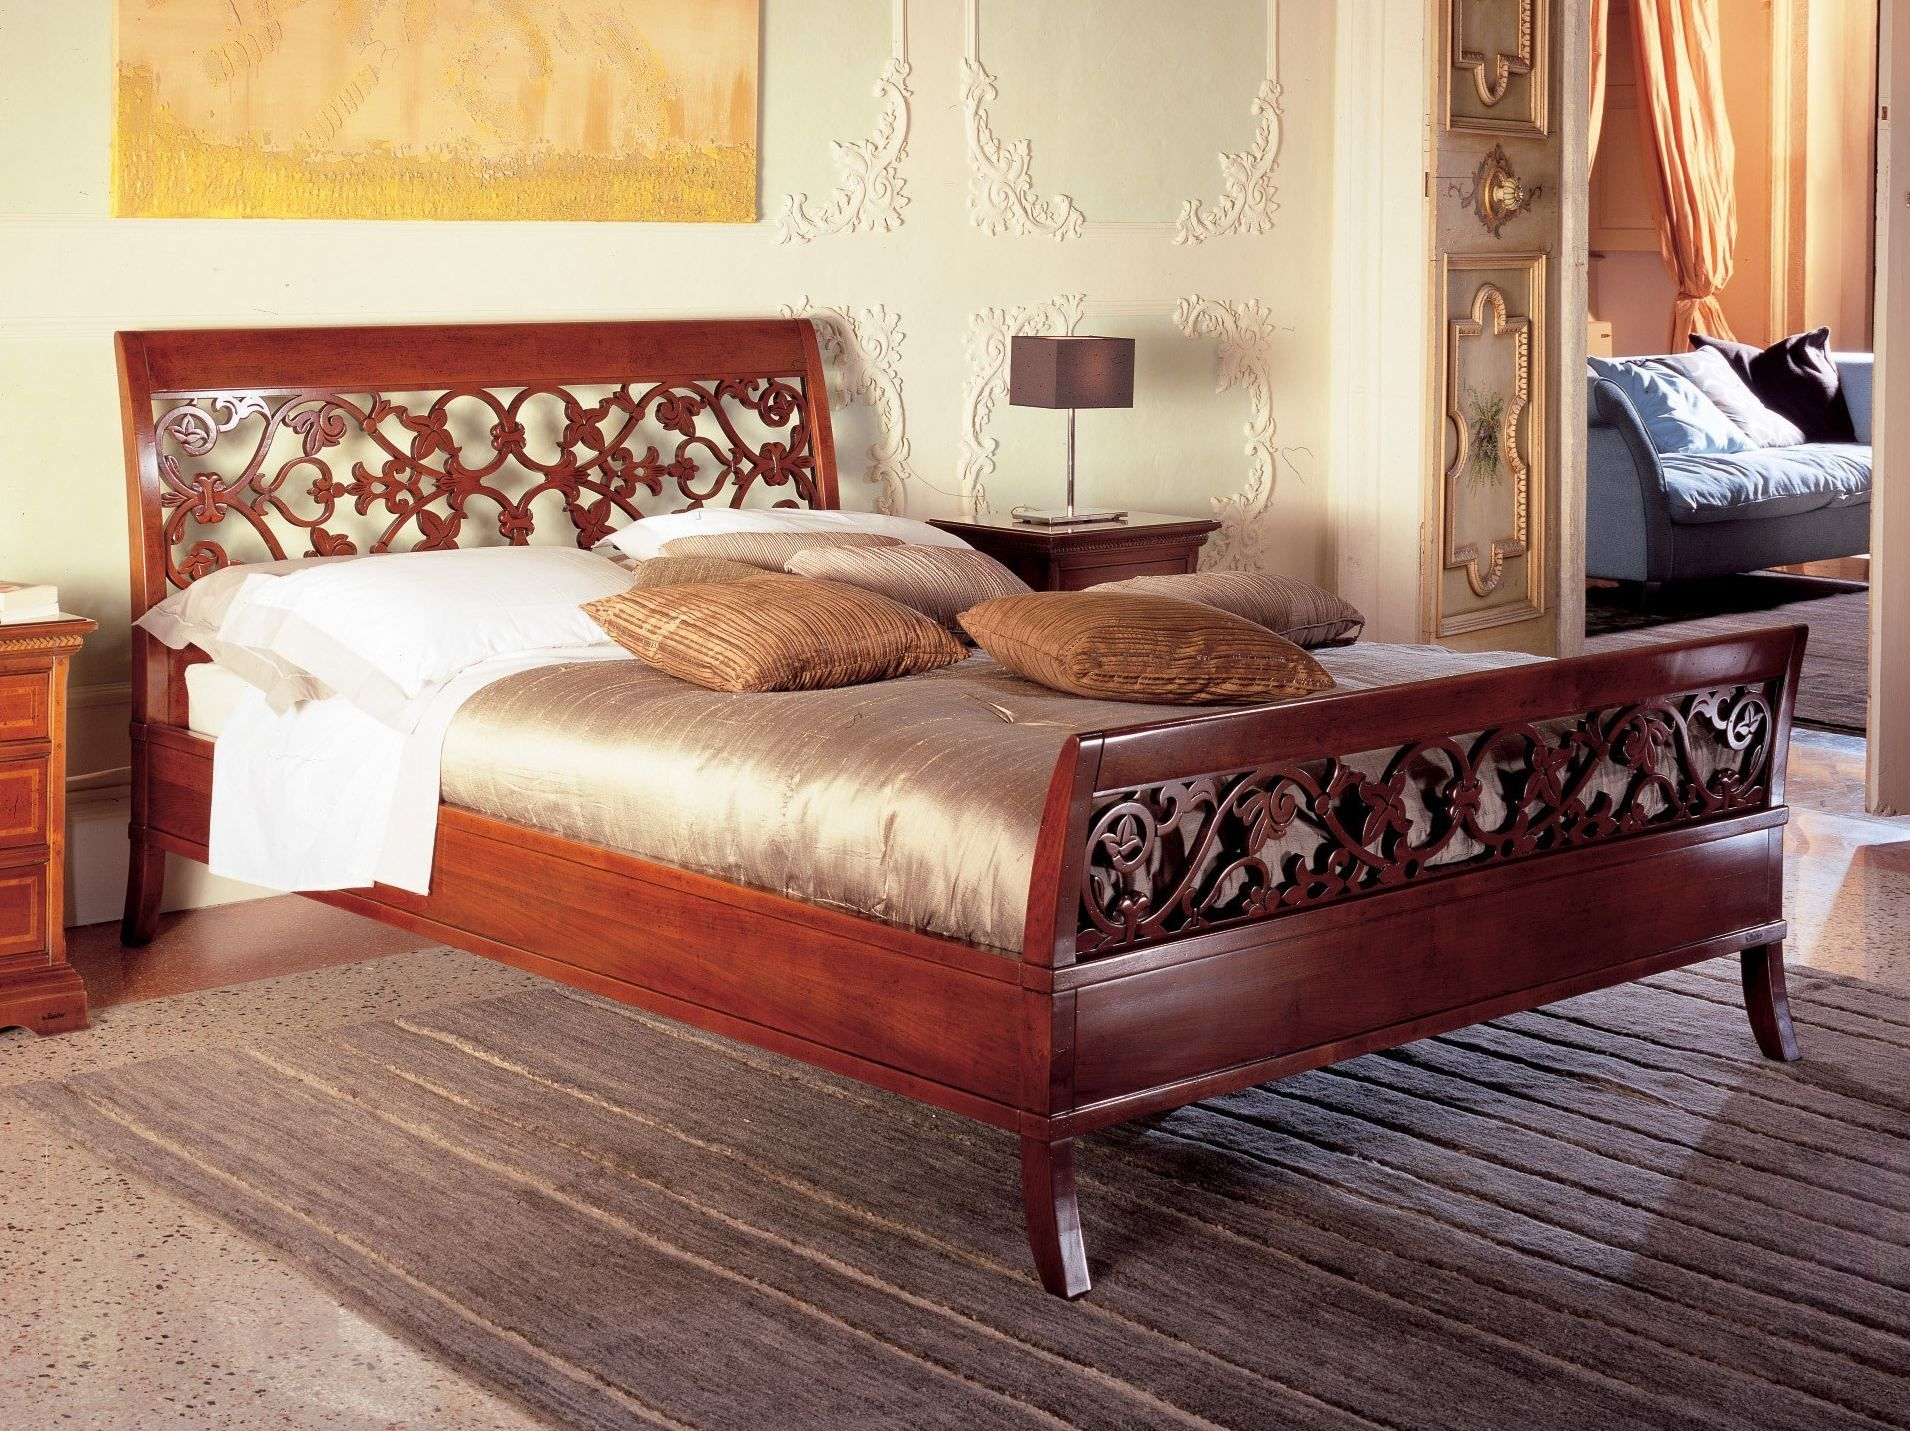 Mobili Classici Le Fablier Letto In Ciliegio In Stile Classico Bedroom Wood Beds Bed